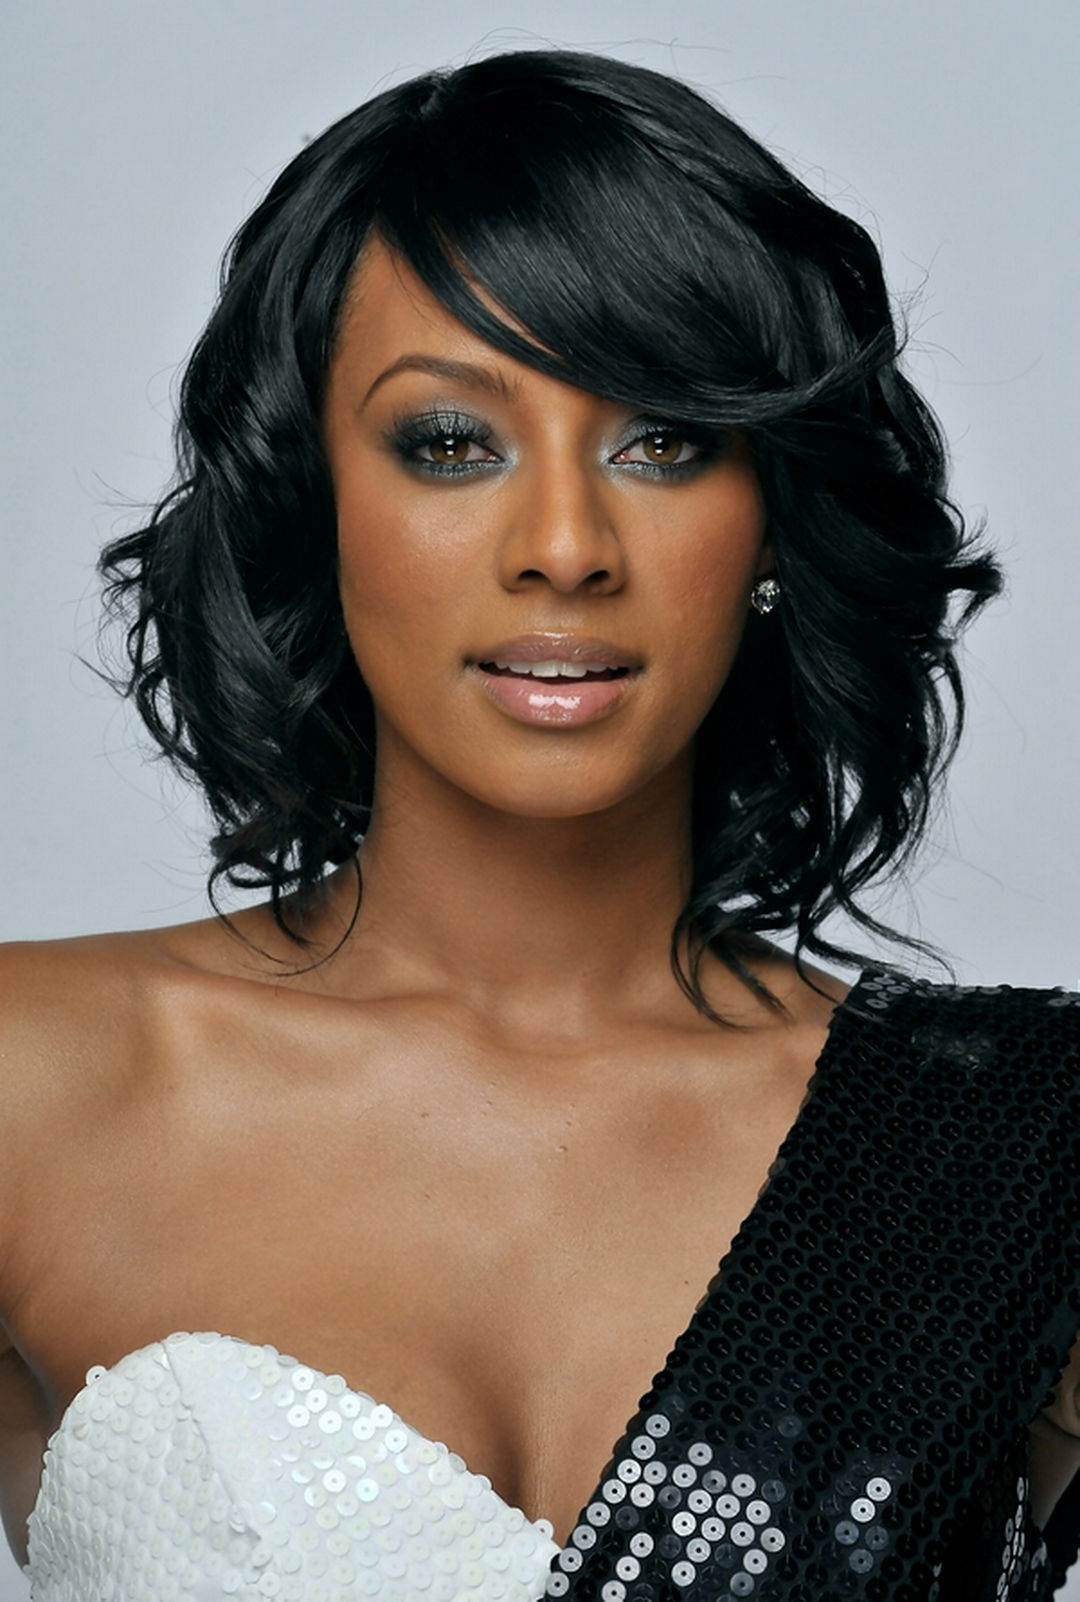 Bob Layered Hairstyles For Women African American Wallpaper : 8 ...